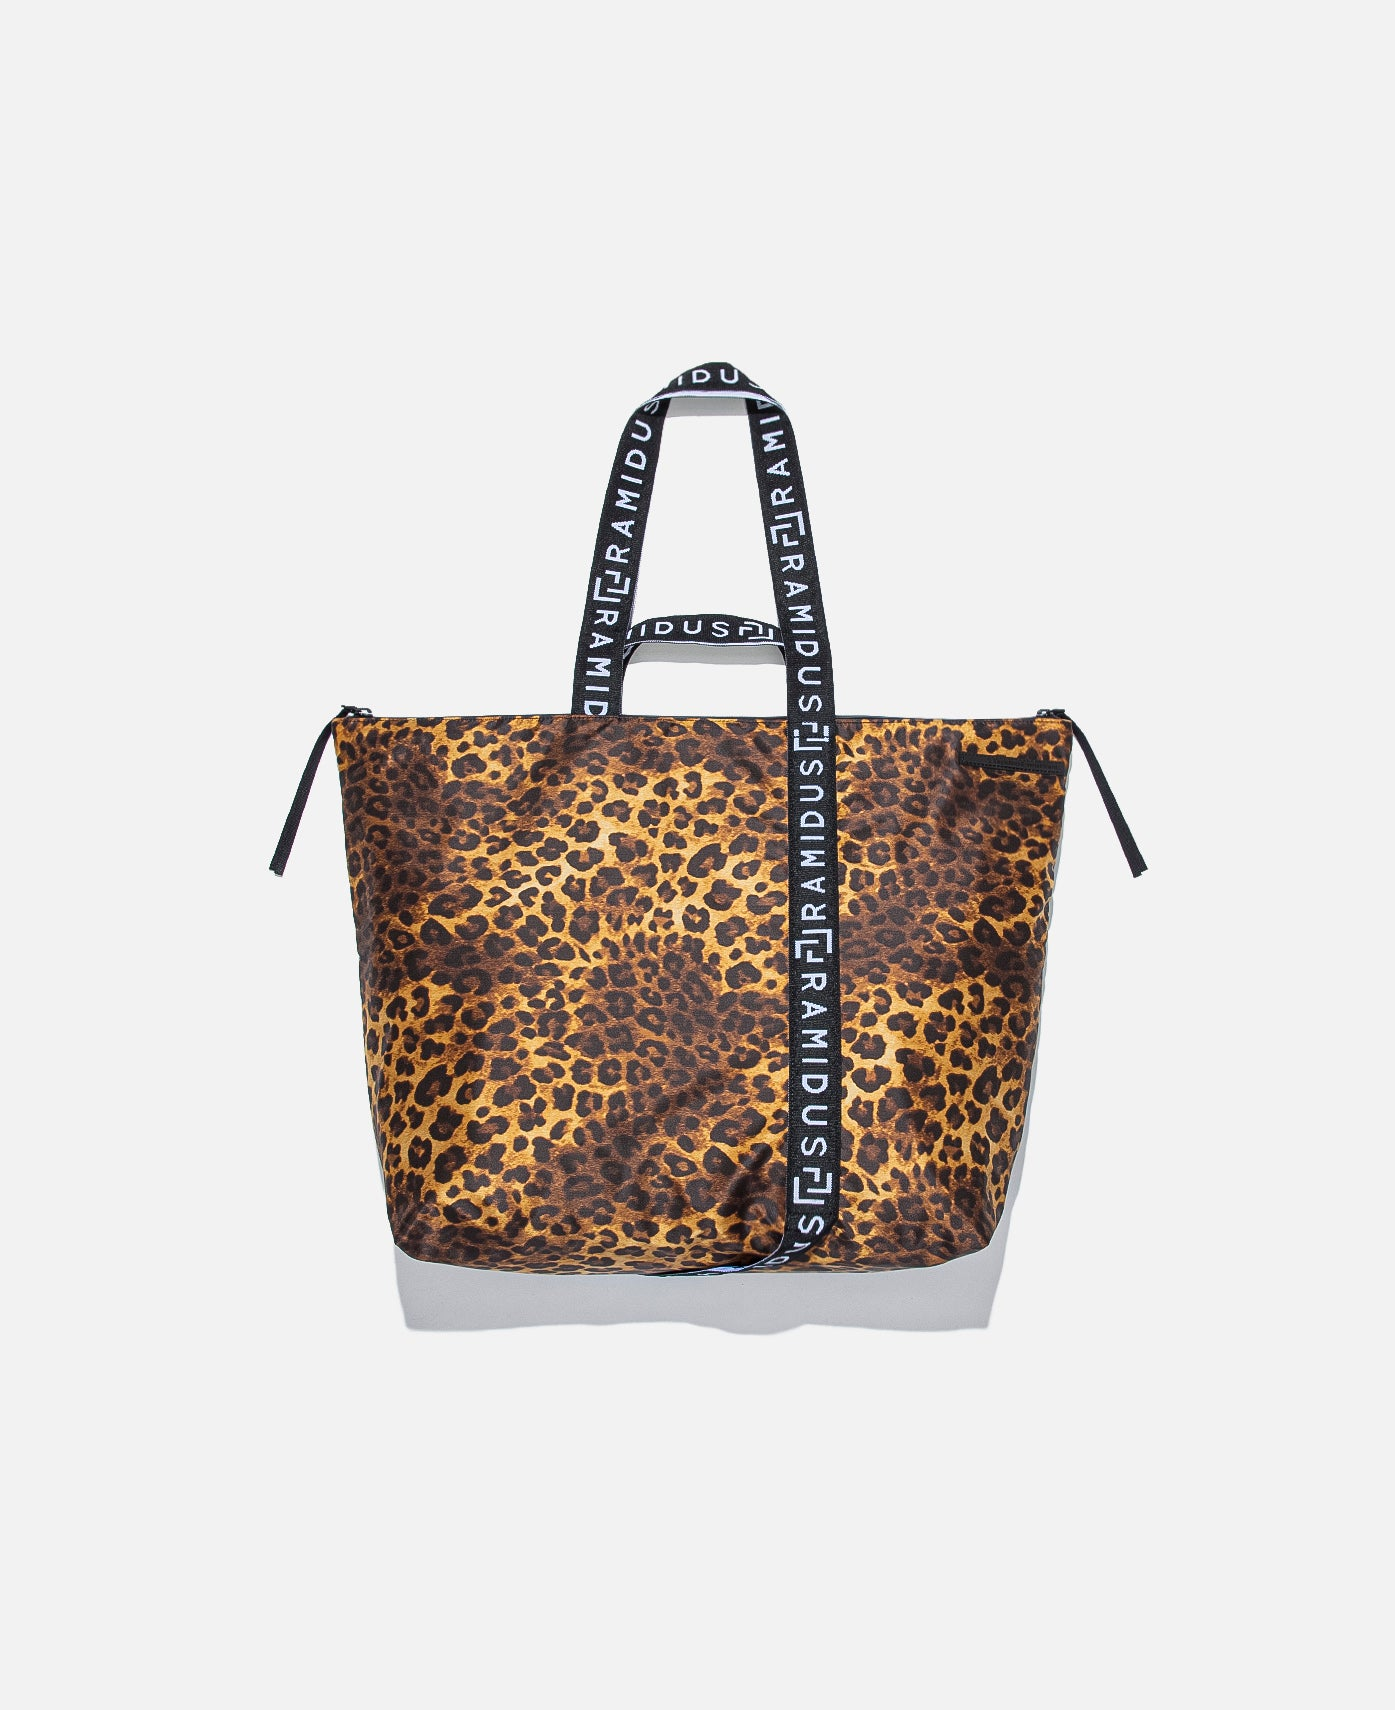 3 Way Tote By Ramidus (Brown)